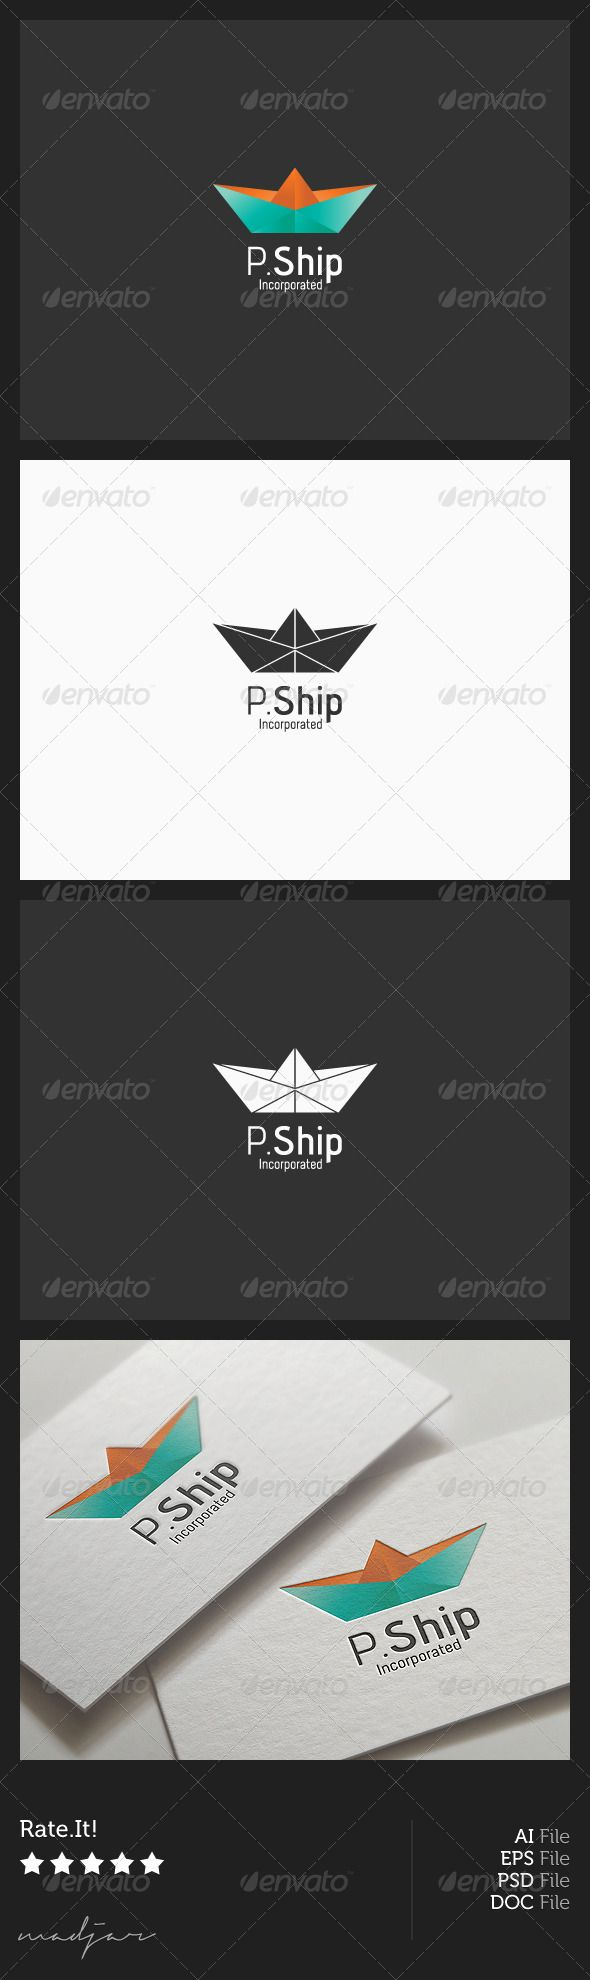 Paper Boat Logo  #GraphicRiver            Paper Boat / Logo (AI) (EPS) (PSD) Tempalte.   RGB Color Mode.  CMYK Color Mode.  Print-Ready Product.  Included:  .AI /